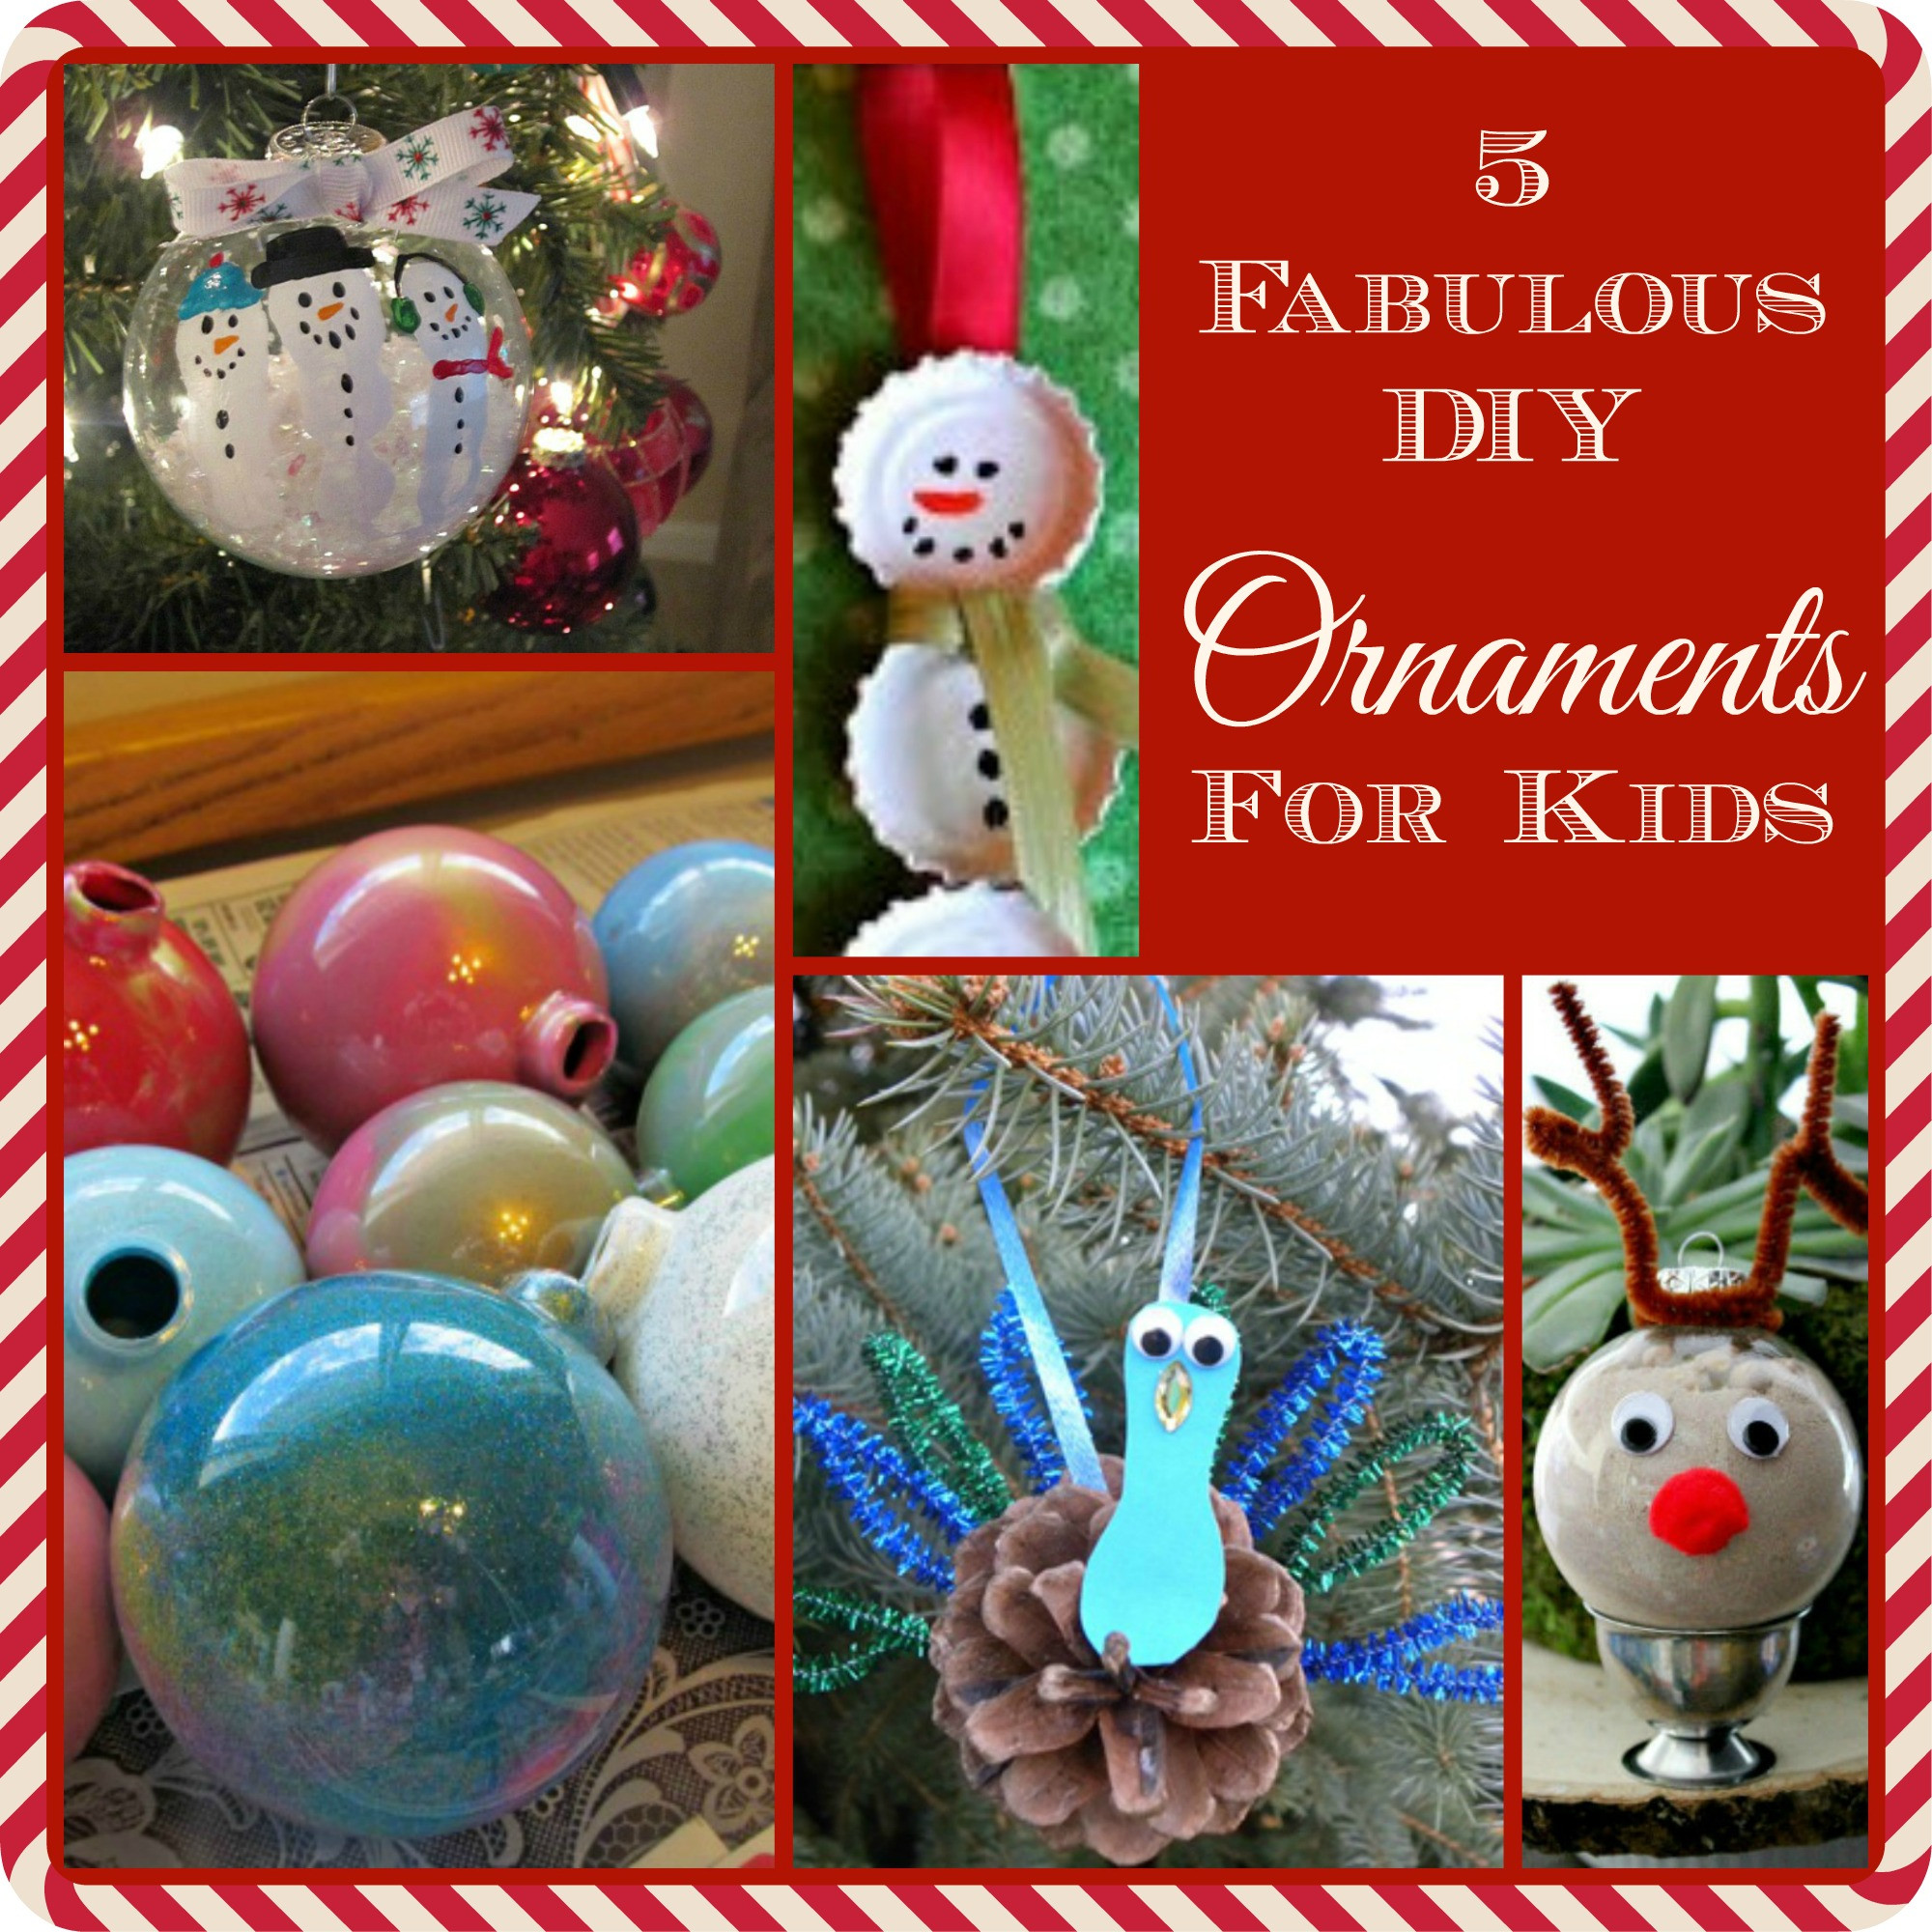 Best ideas about DIY Christmas Ornament For Kids . Save or Pin 5 Fabulous DIY Christmas Ornaments for Kids The Now.